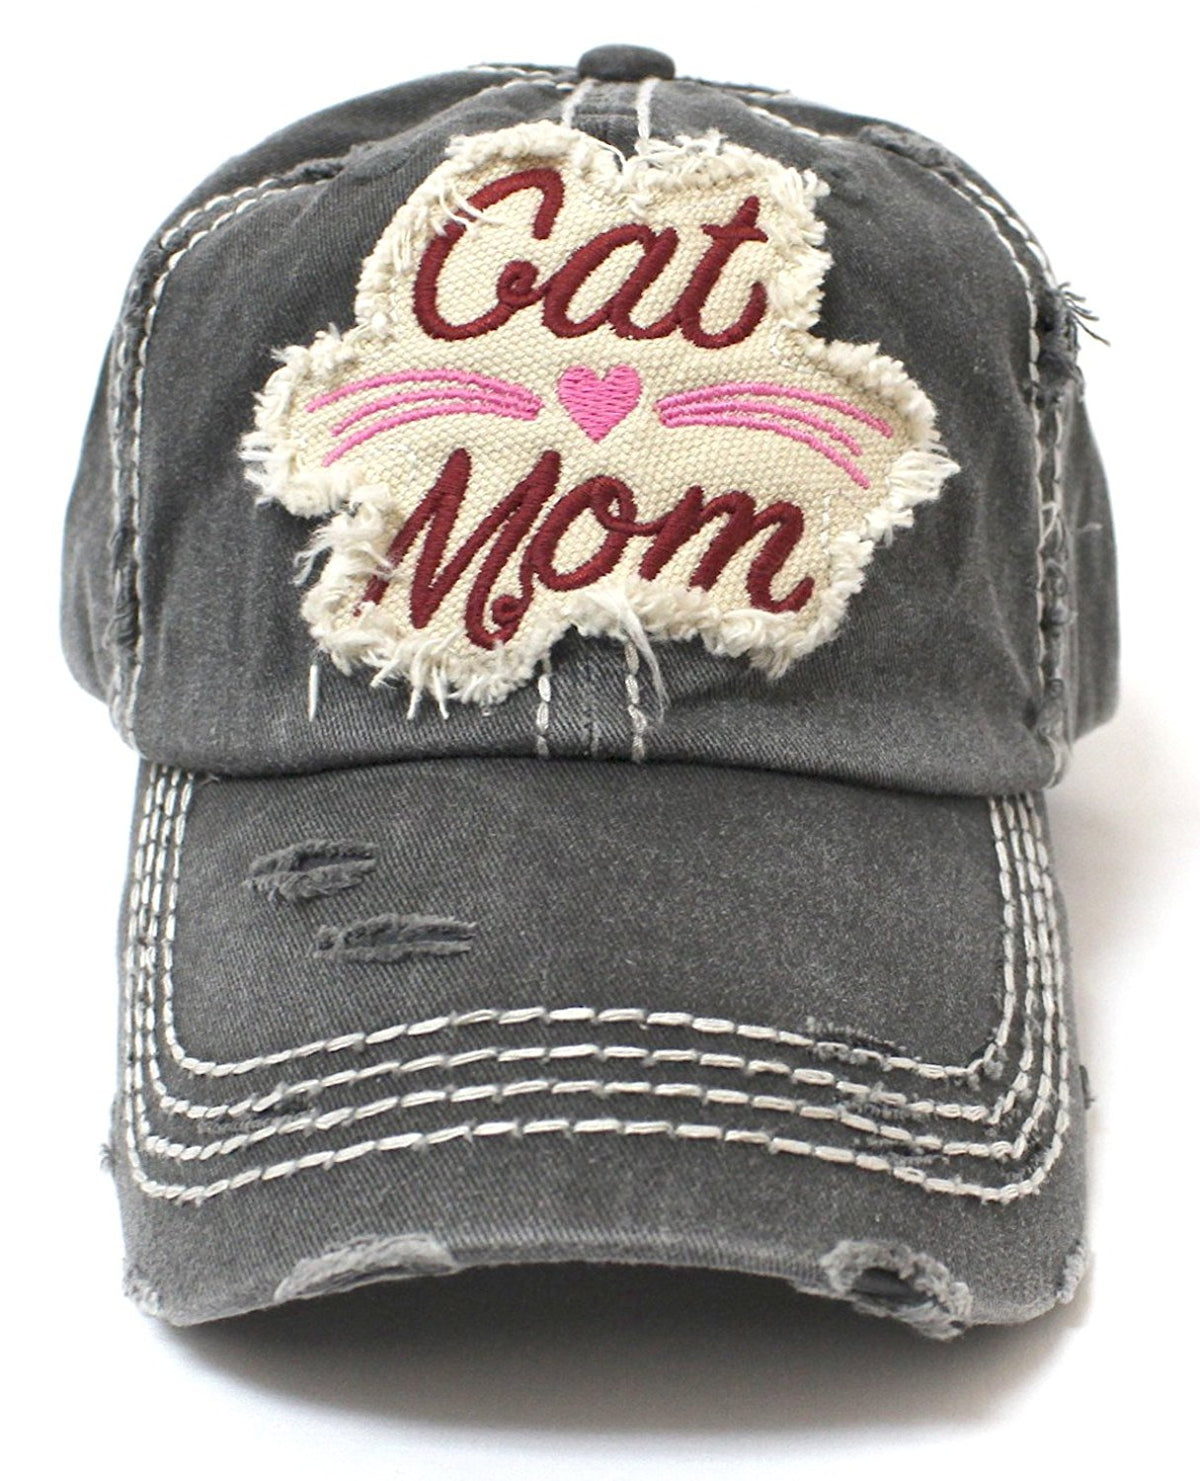 CAPS 'N VINTAGE BLK Cat Mom Heart & Whiskers Patch Embroidery Baseball Hat - Caps 'N Vintage